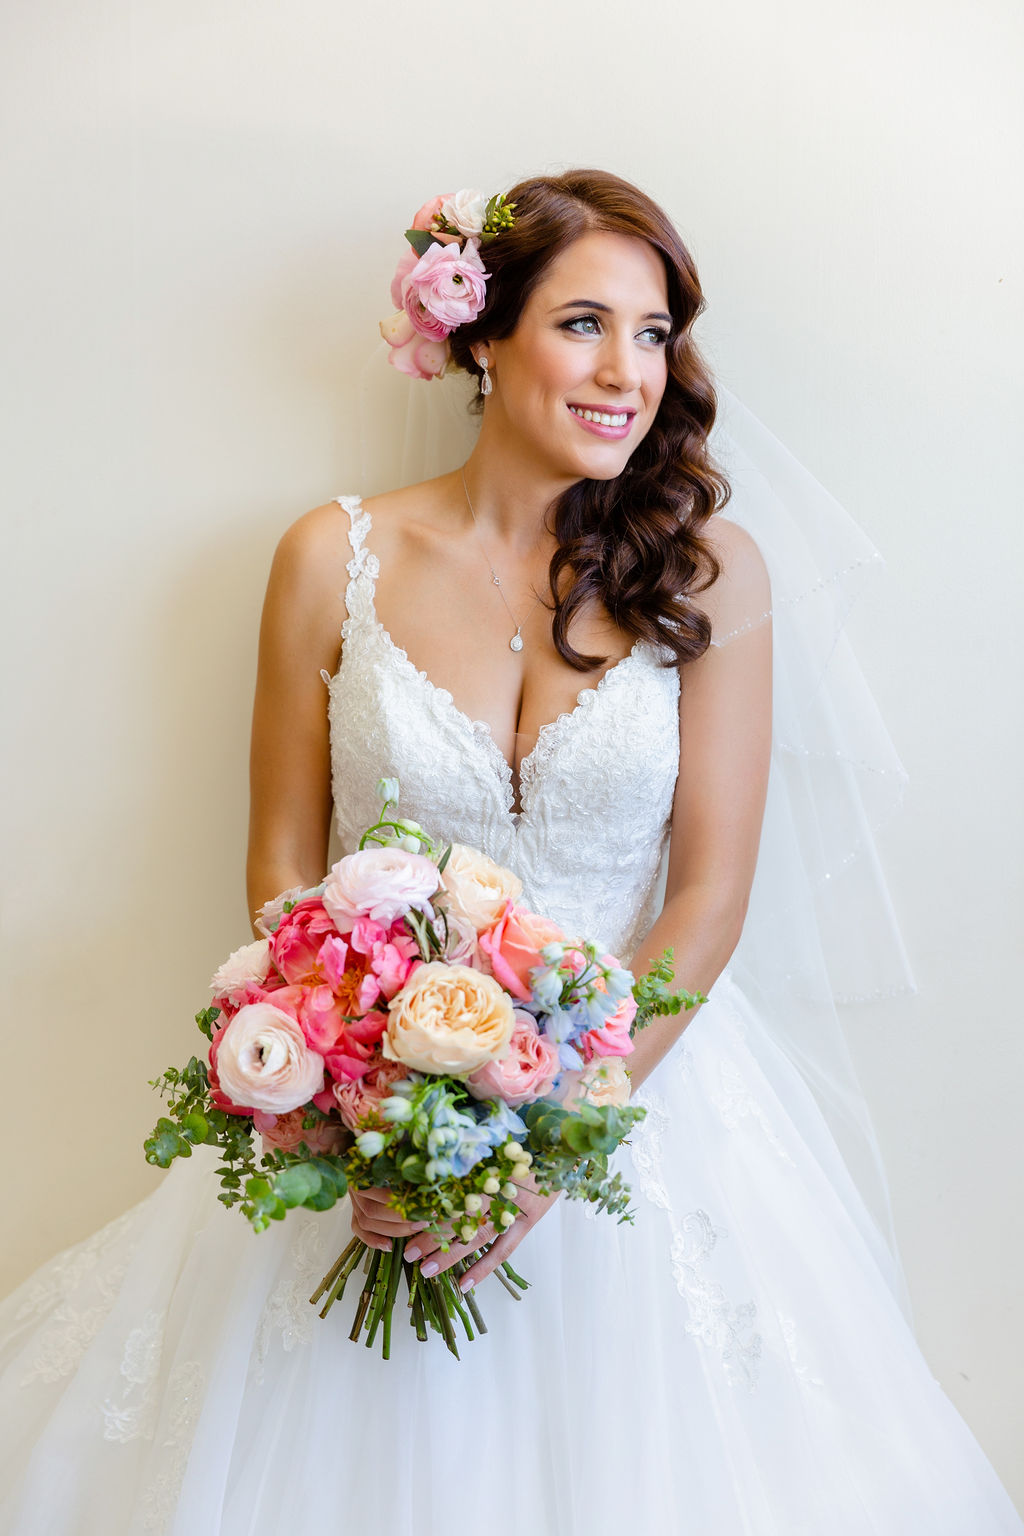 Pretty pastel wedding bouquet featuring peonies, roses and ranunculus